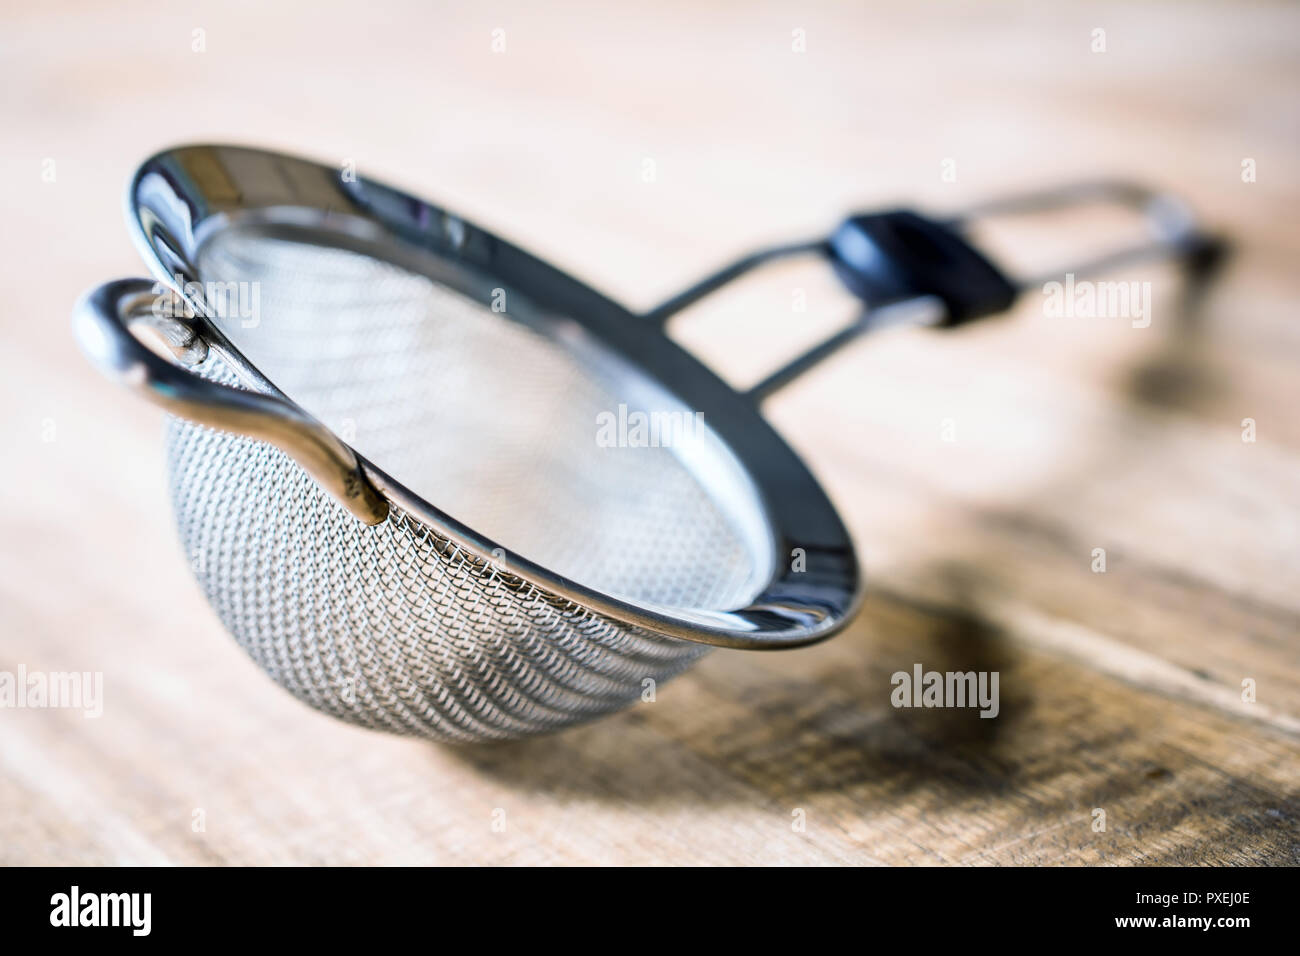 A Stainless Sieve Lying Down On A Wooden Table - Stock Image